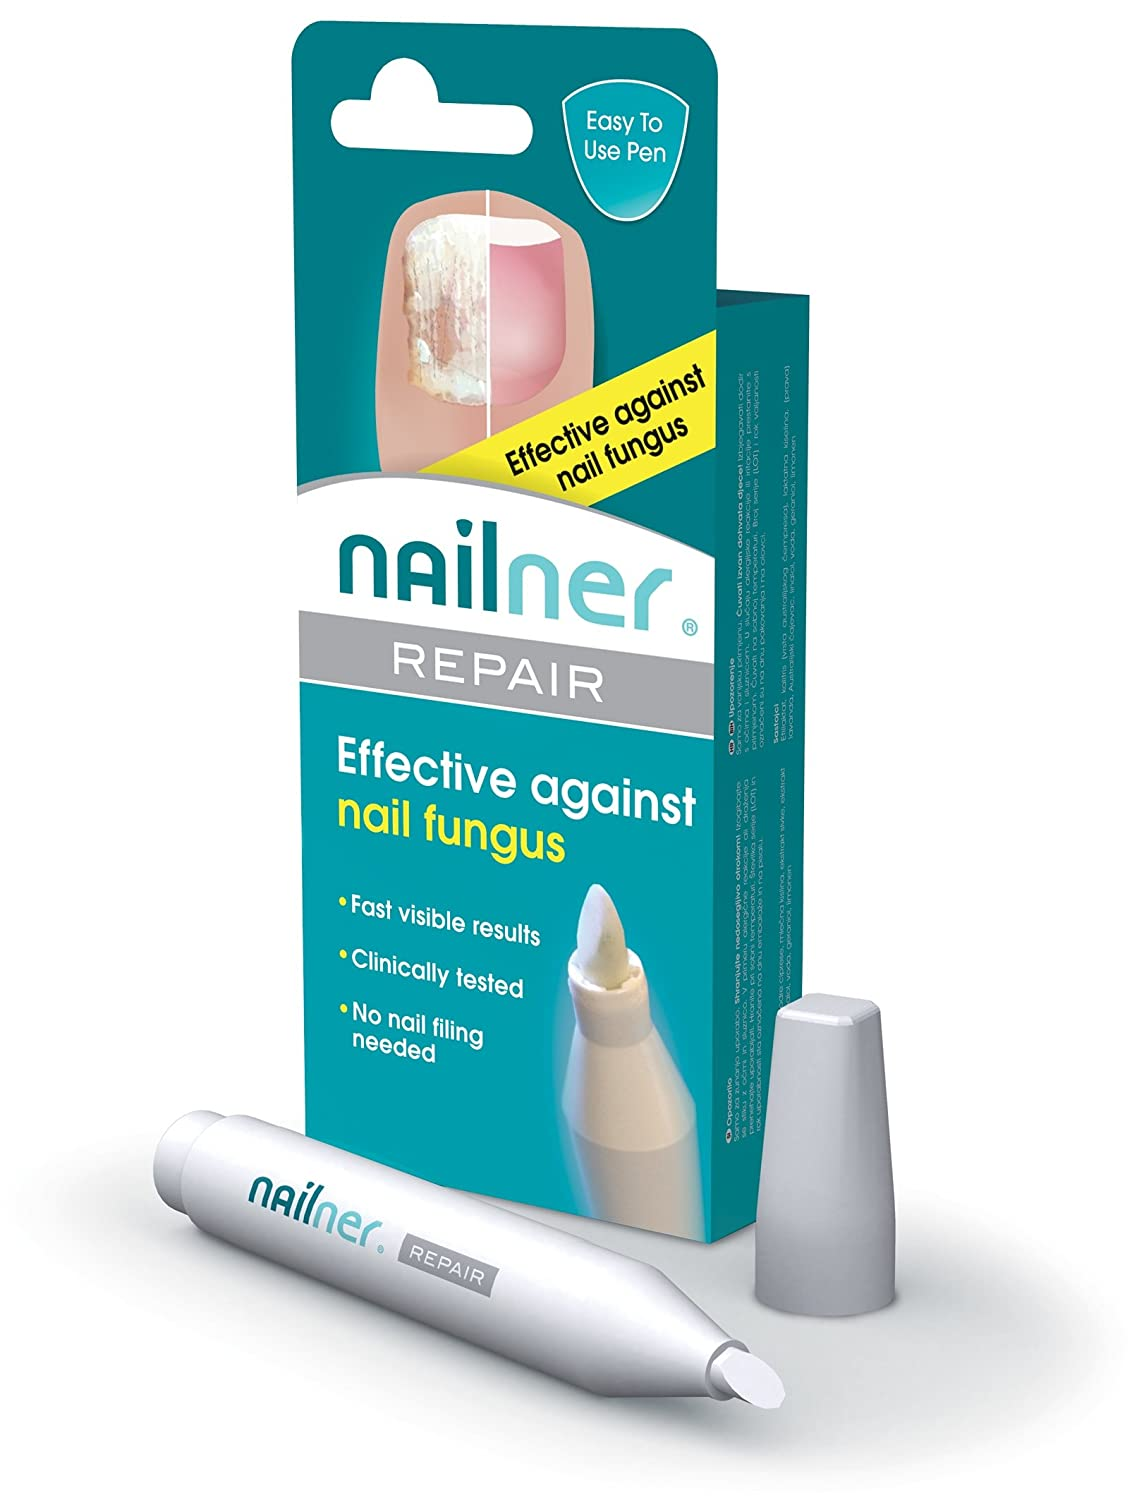 Nailner Repair Pen for Fungal Nail Infection - 4ml: Amazon.co.uk ...